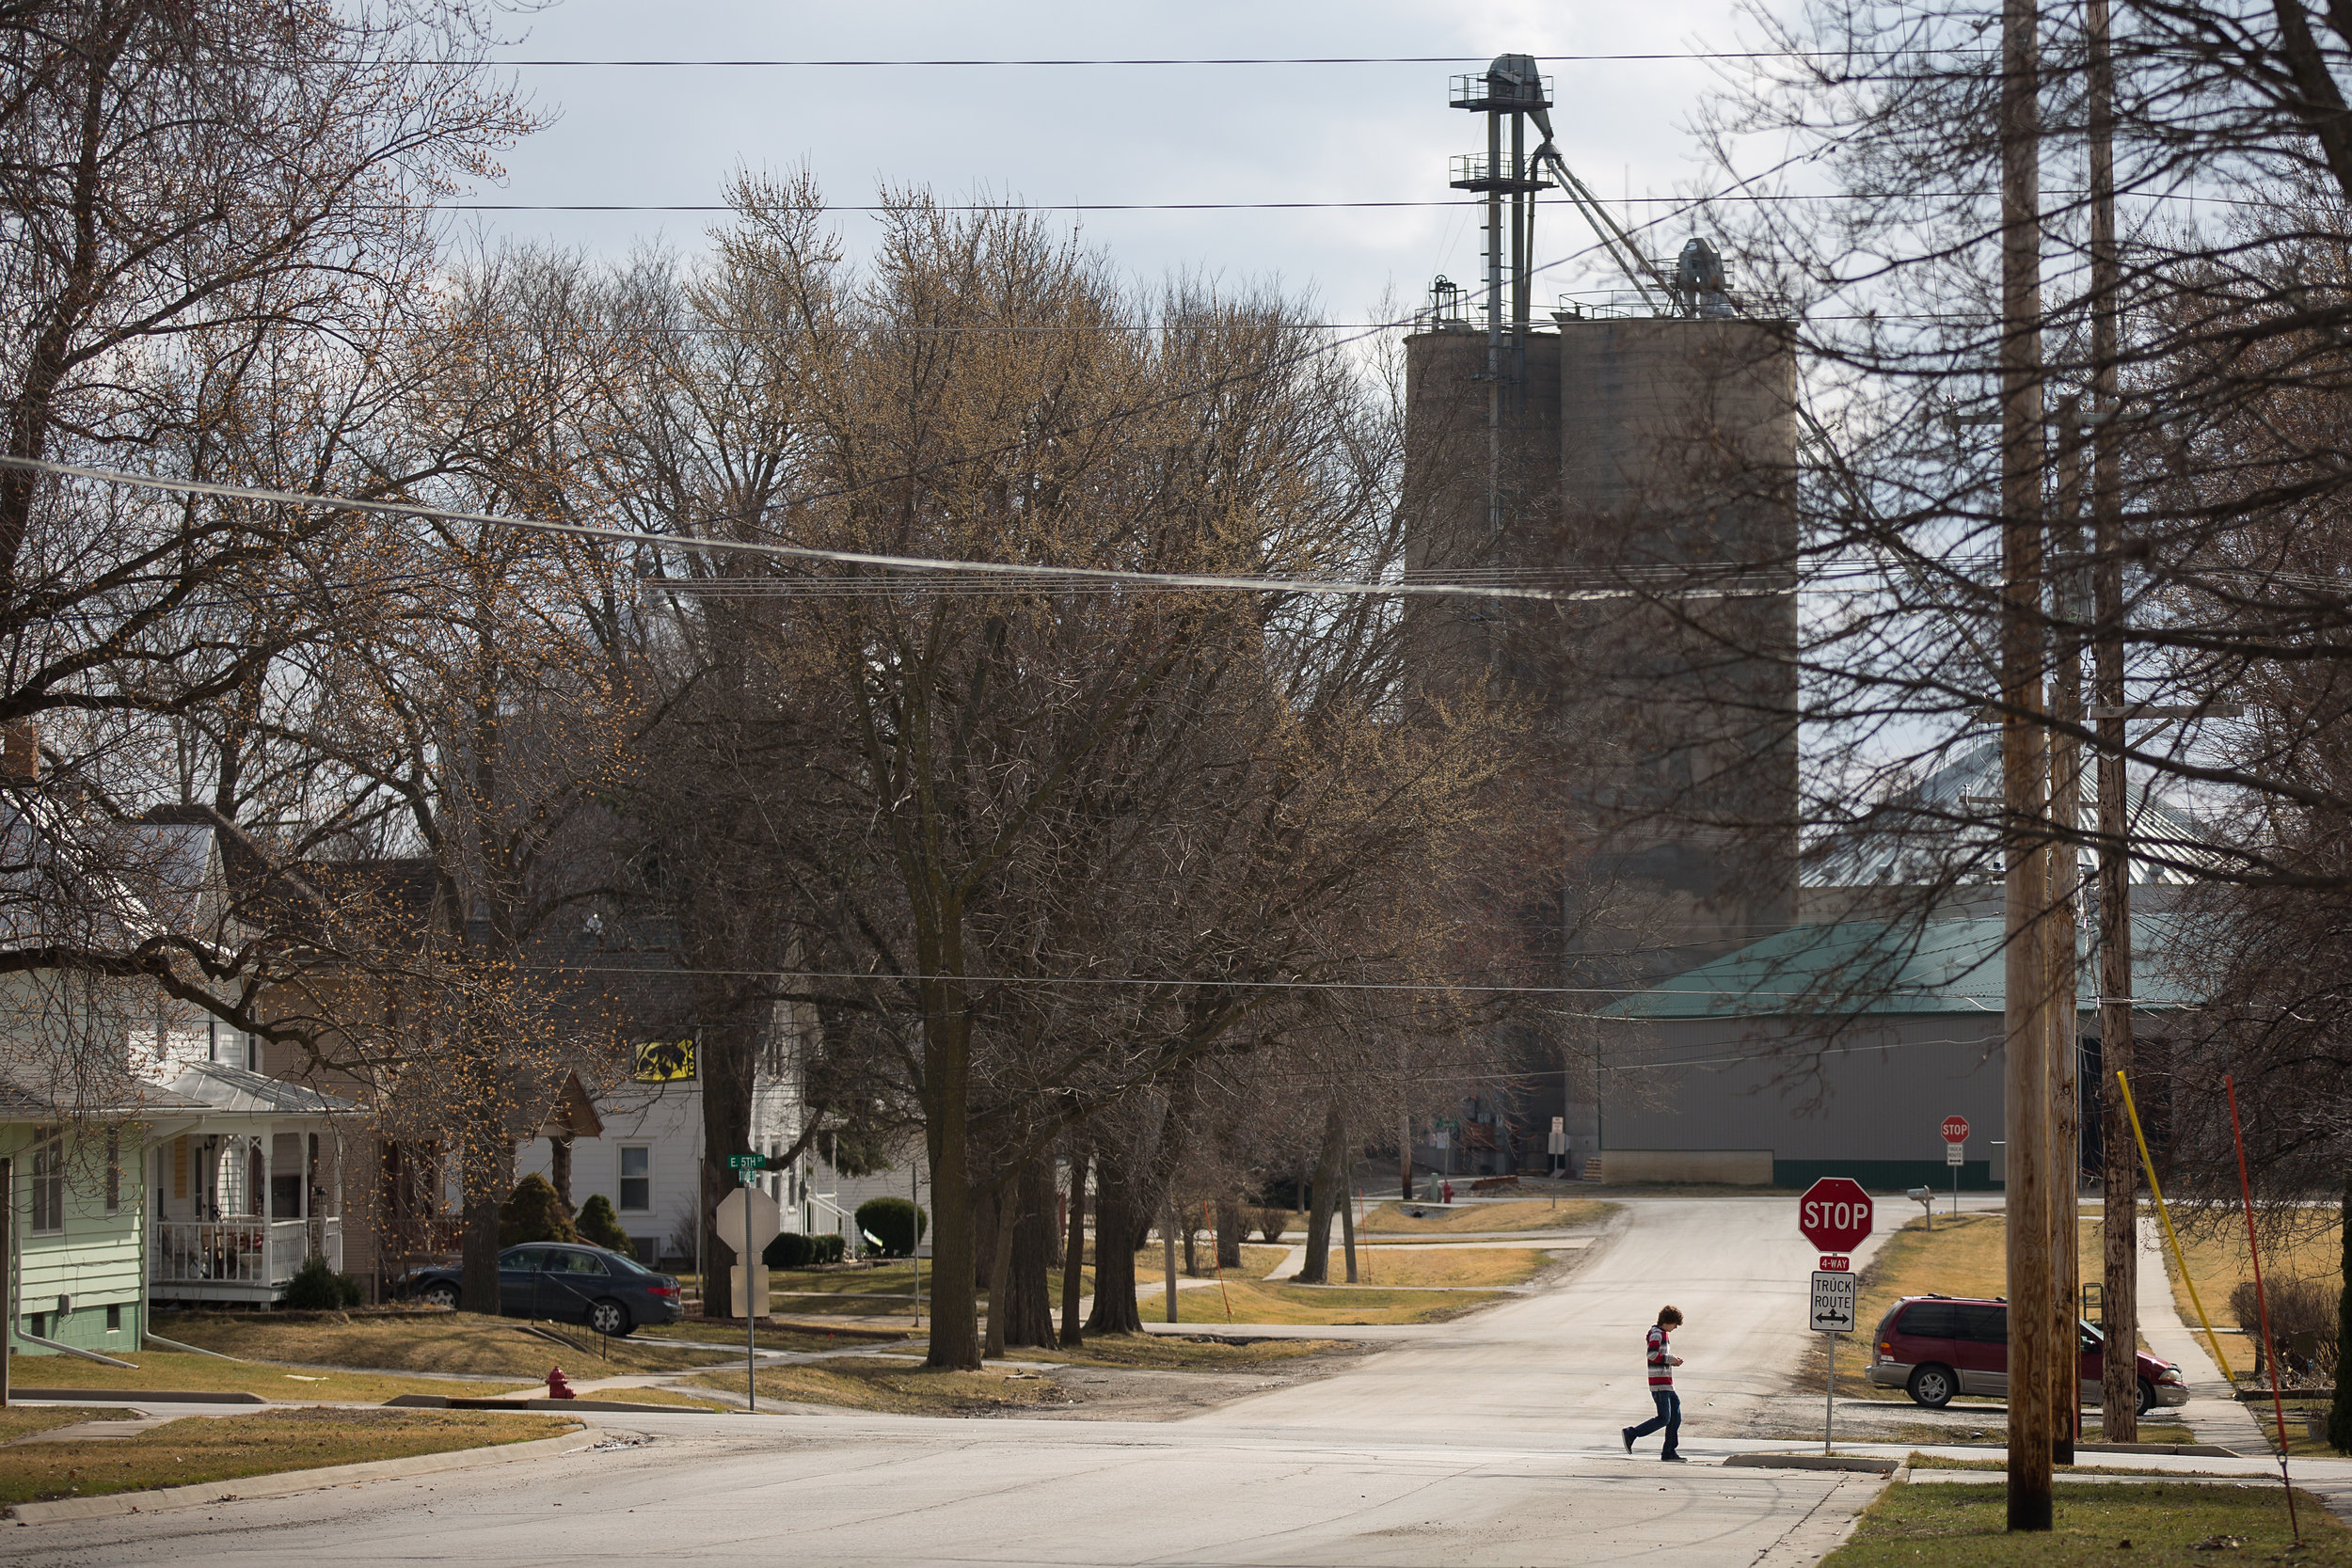 South Dubuque Street in Solon, Iowa on Tuesday, March 8, 2016. The town of Solon is home to about 2,500 people, but thanks to a sprawling geographic area and Iowa's open enrollment policy, the district has more than 1,500 students.